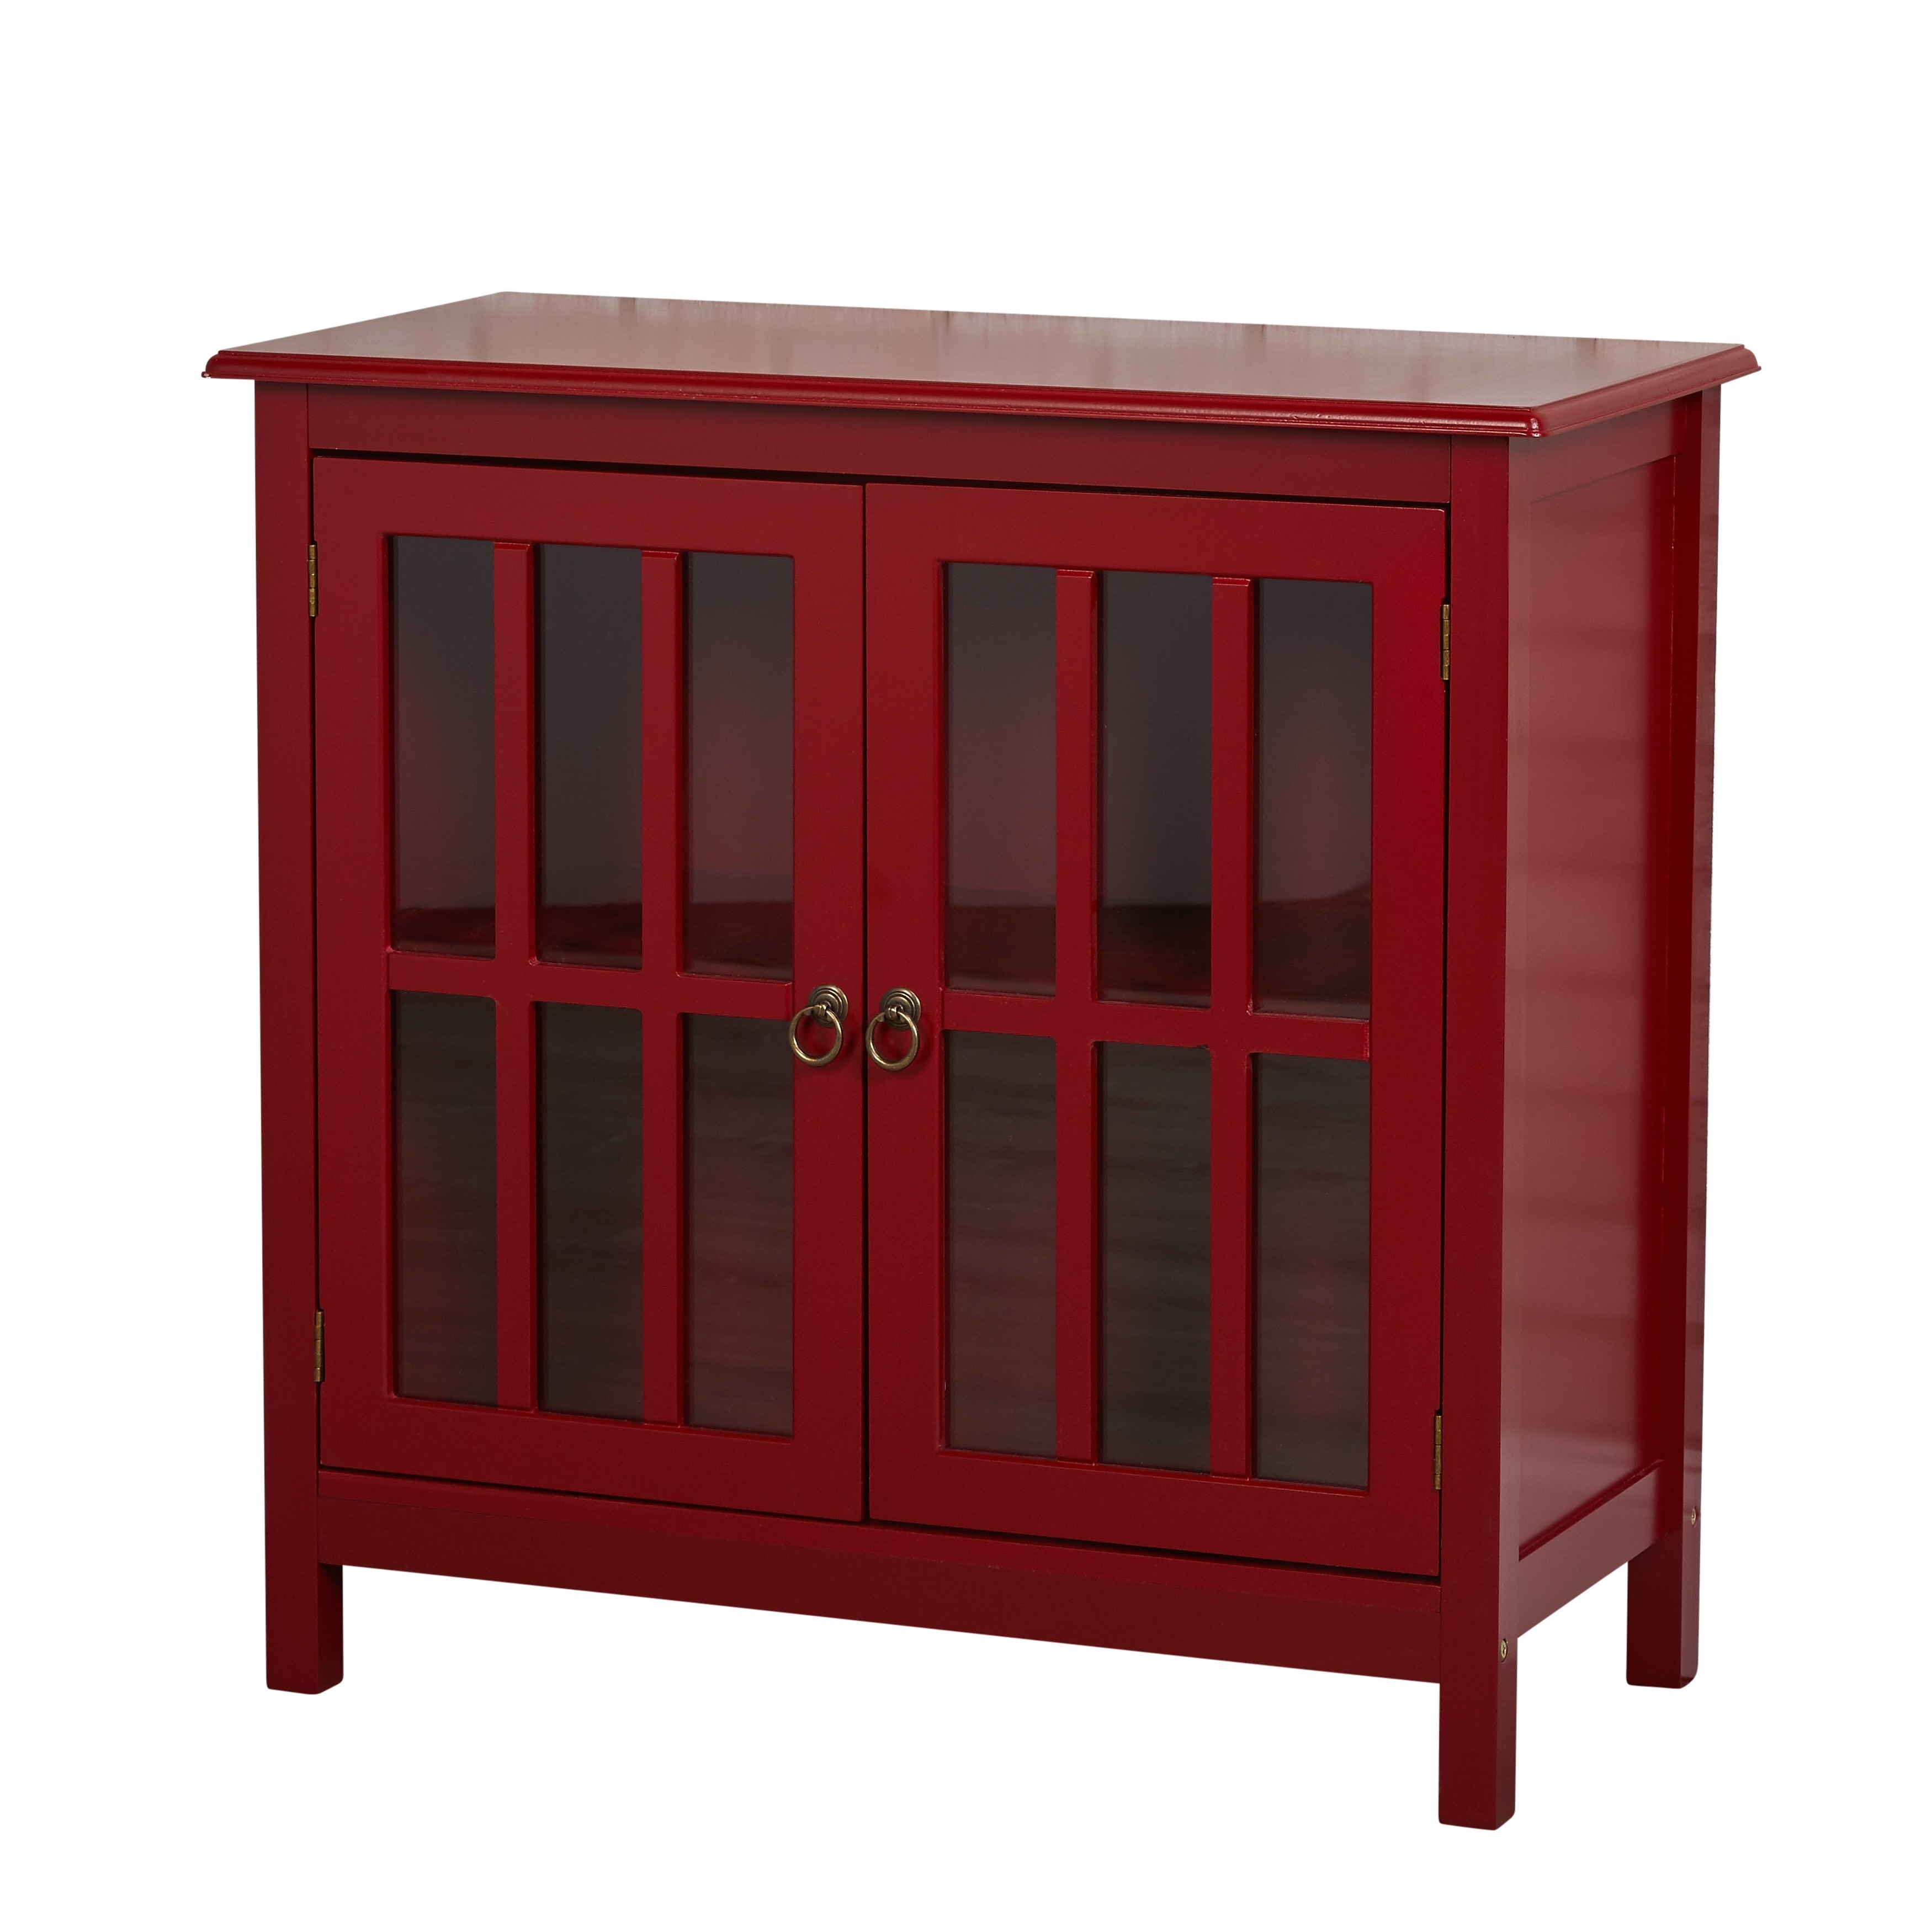 Shop Simple Living Portland Glass Door Cabinet - N/A - Free Shipping ...